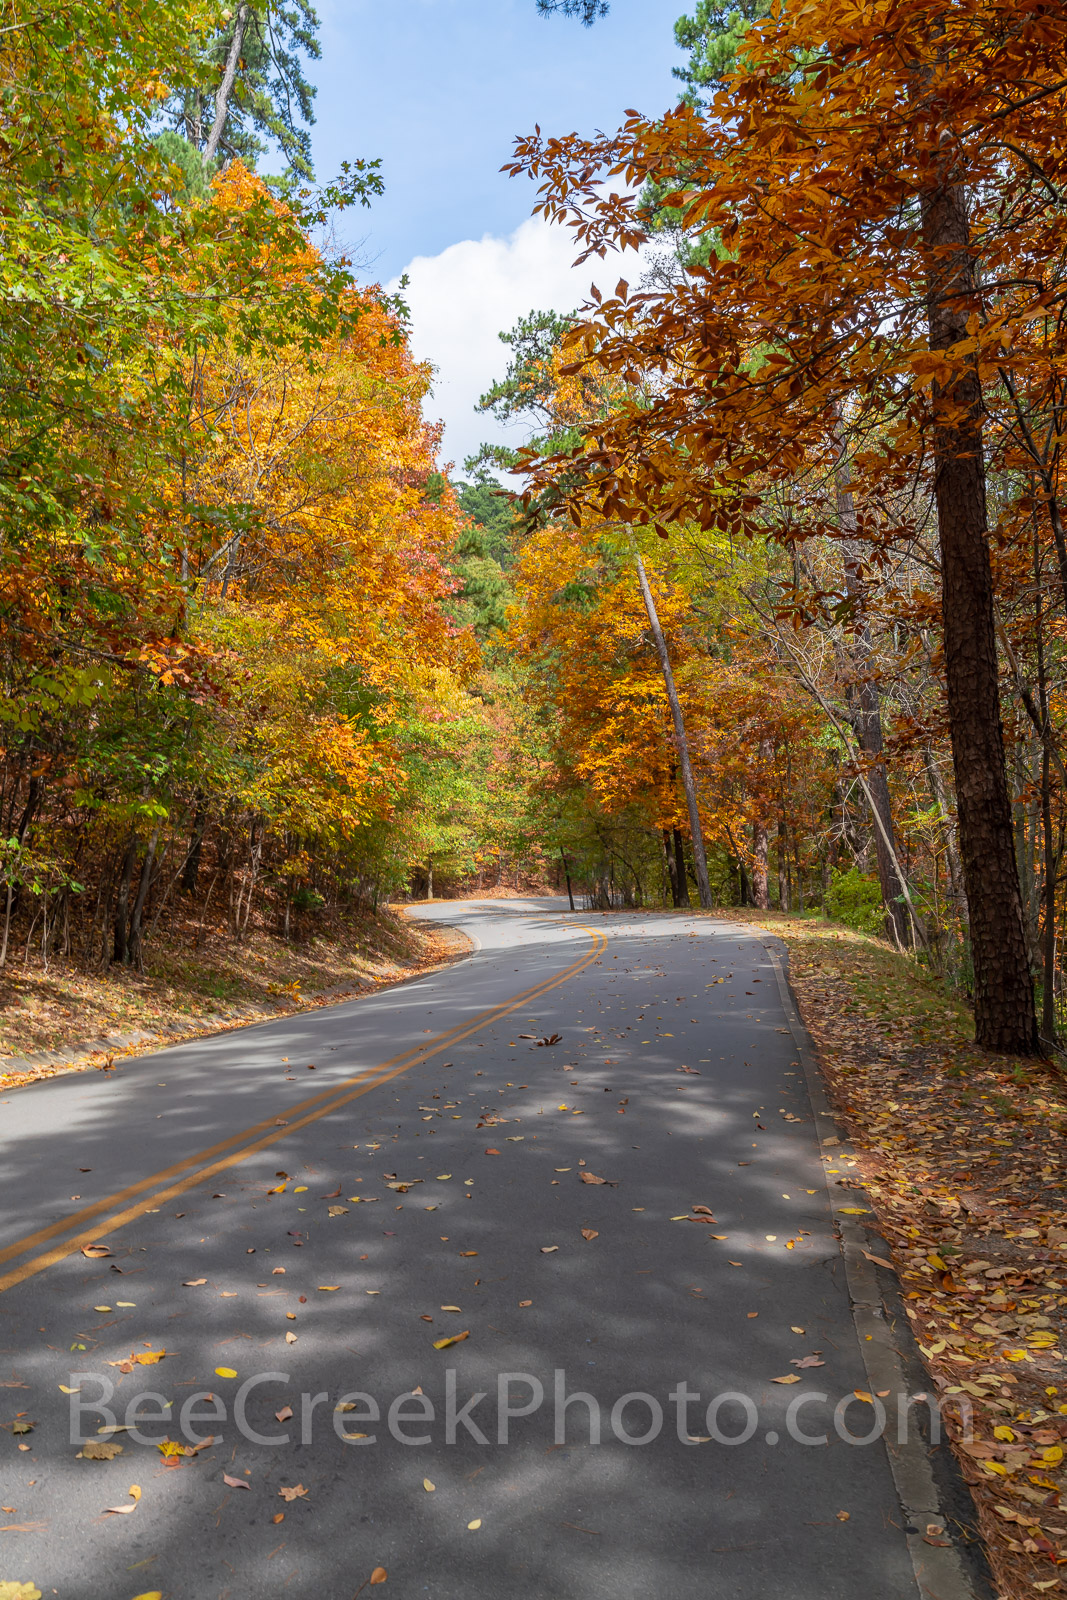 fall, autumn, yellow, orange, pine, cypress, trees, shades, yellow, orange, rust, colors, Tower Mountain, road, arkansas, national, forest, october, curves, sun light, tree line road, pines, maples, s, photo